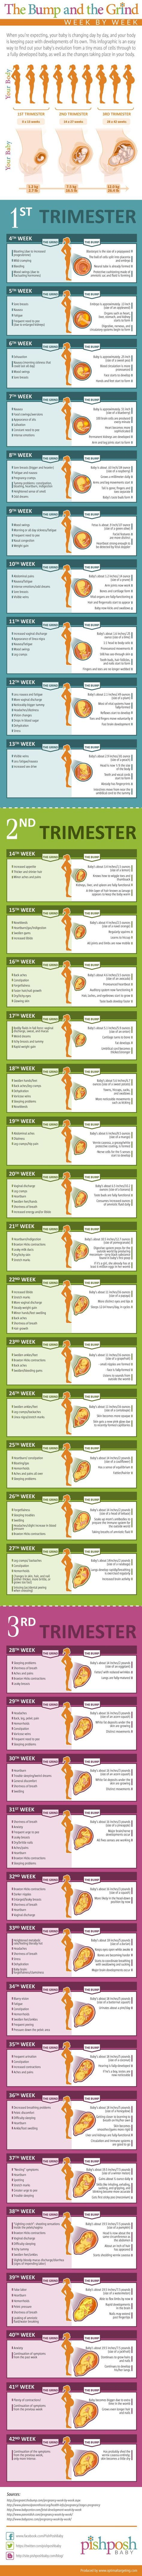 The Bump and the Grind: Week By Week